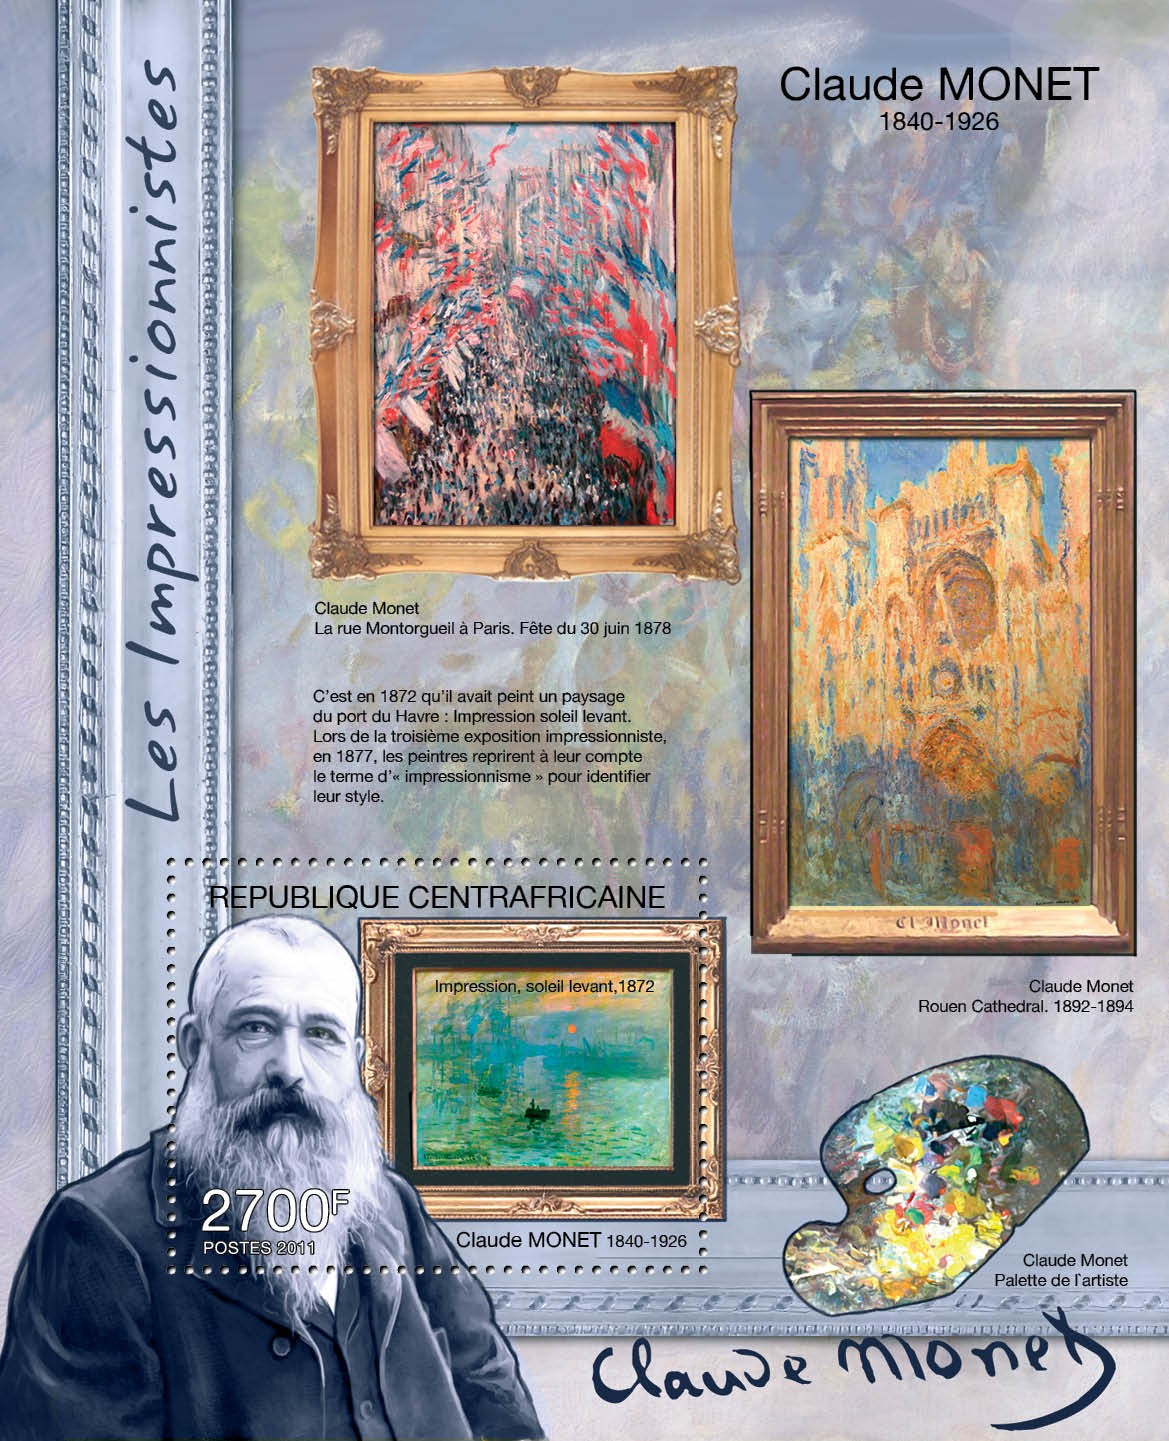 Impressionists, (Claude Monet). - Issue of Central African republic postage stamps